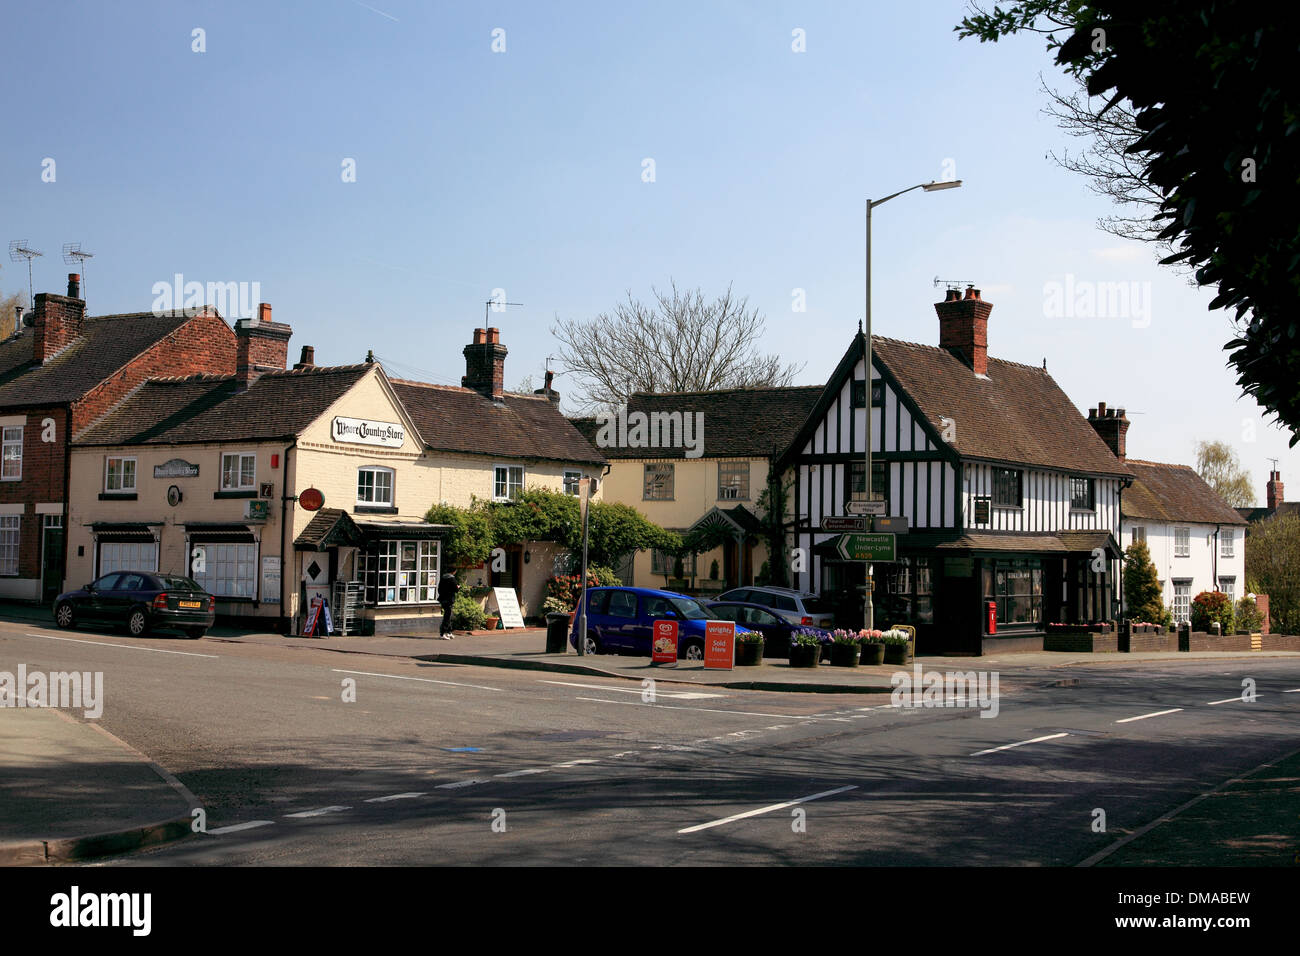 The village shop and post office in the centre of Woore, Shropshire on the border with Cheshire - Stock Image